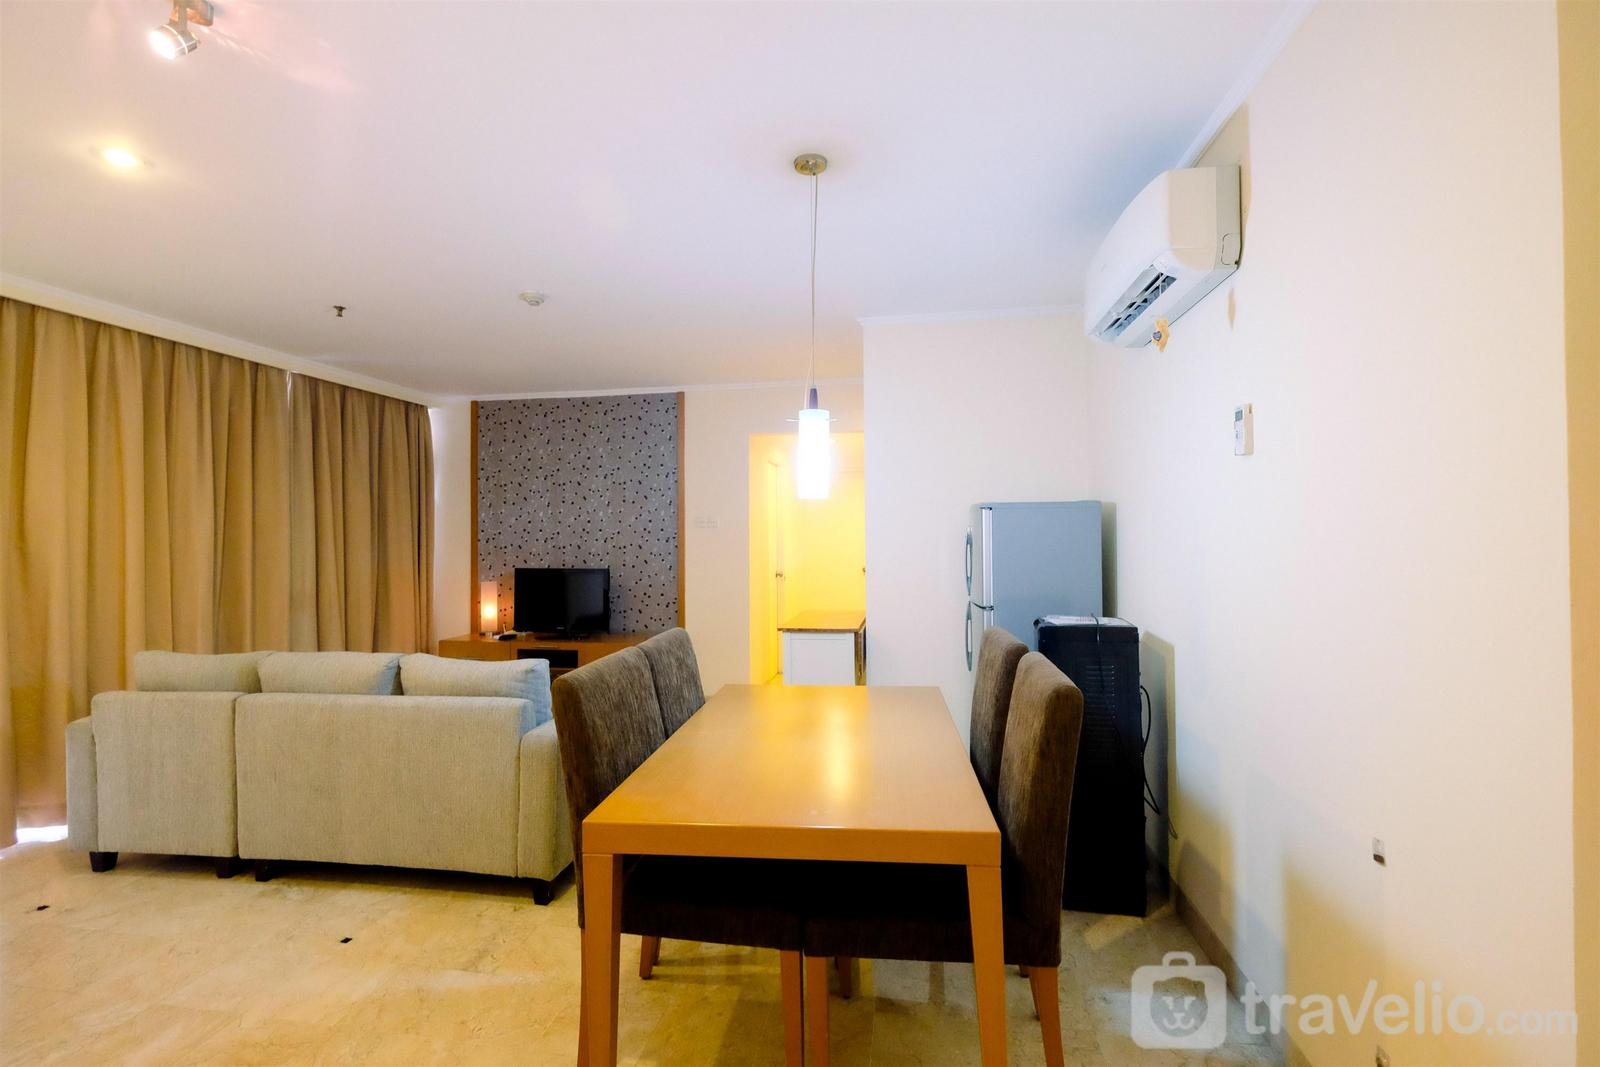 Apartemen Beverly Tower - Modern Contemporer 2BR Beverly Tower Apartment By Travelio